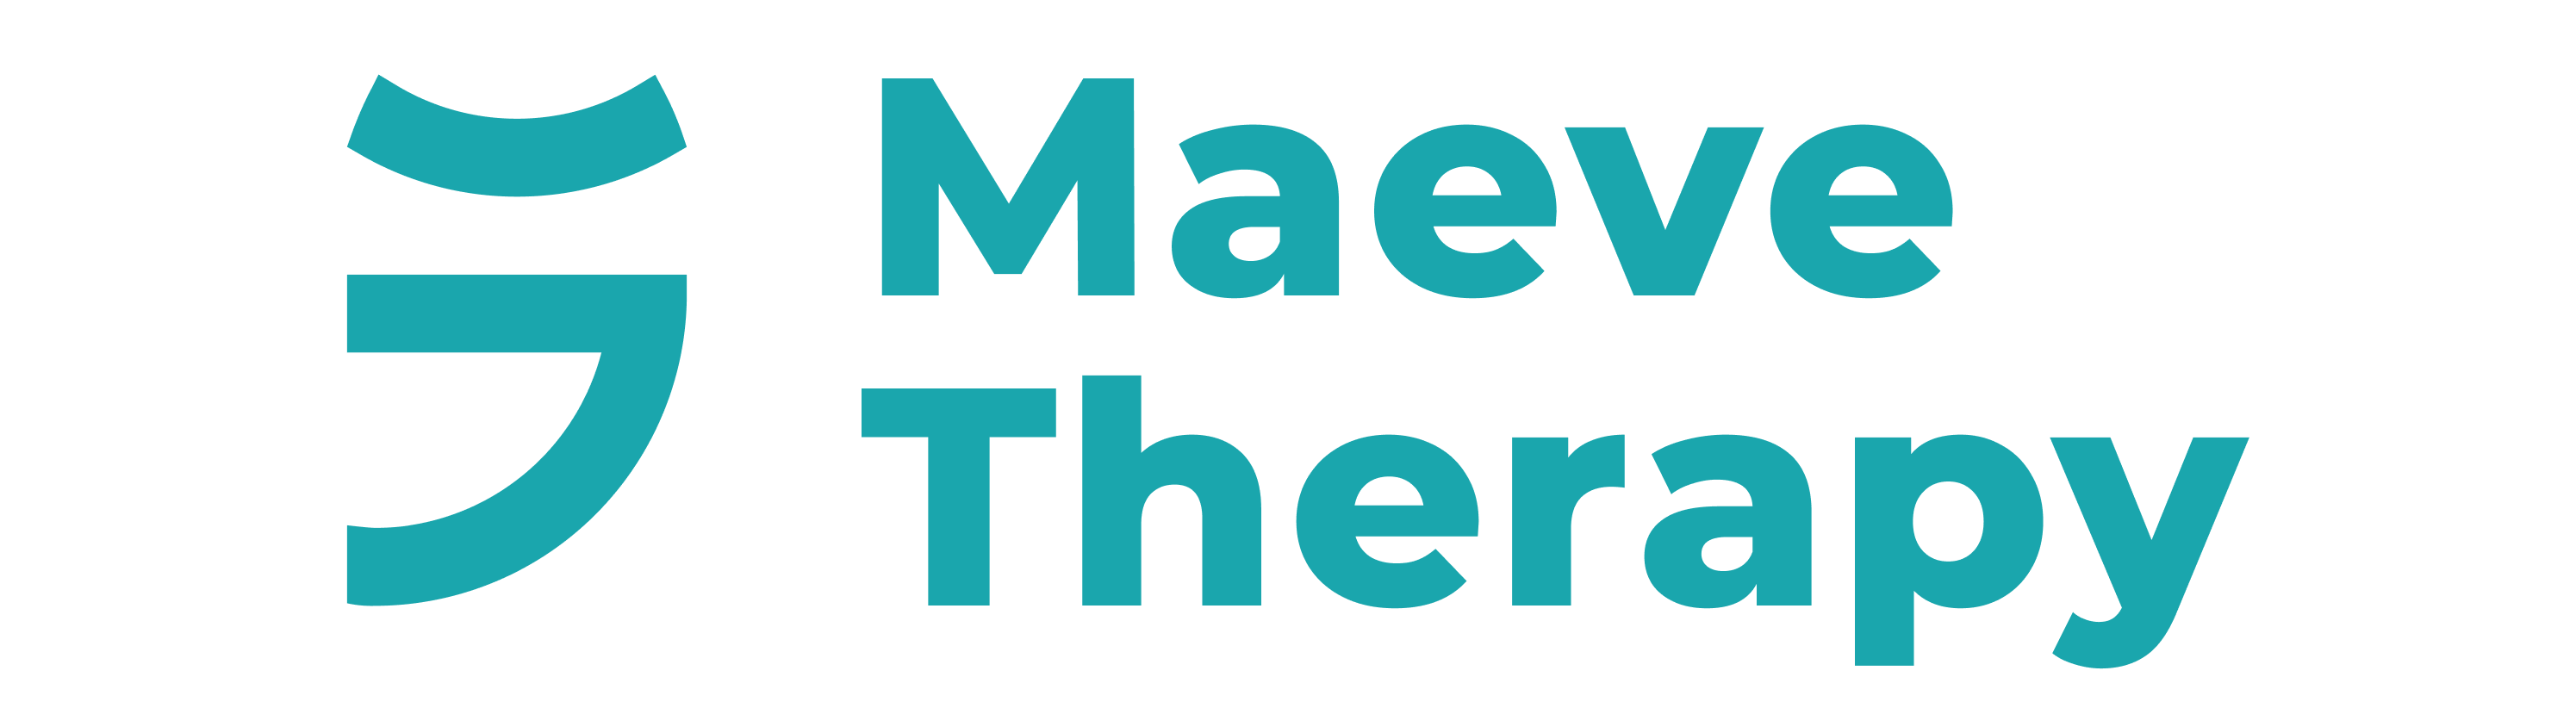 Maeve Therapy